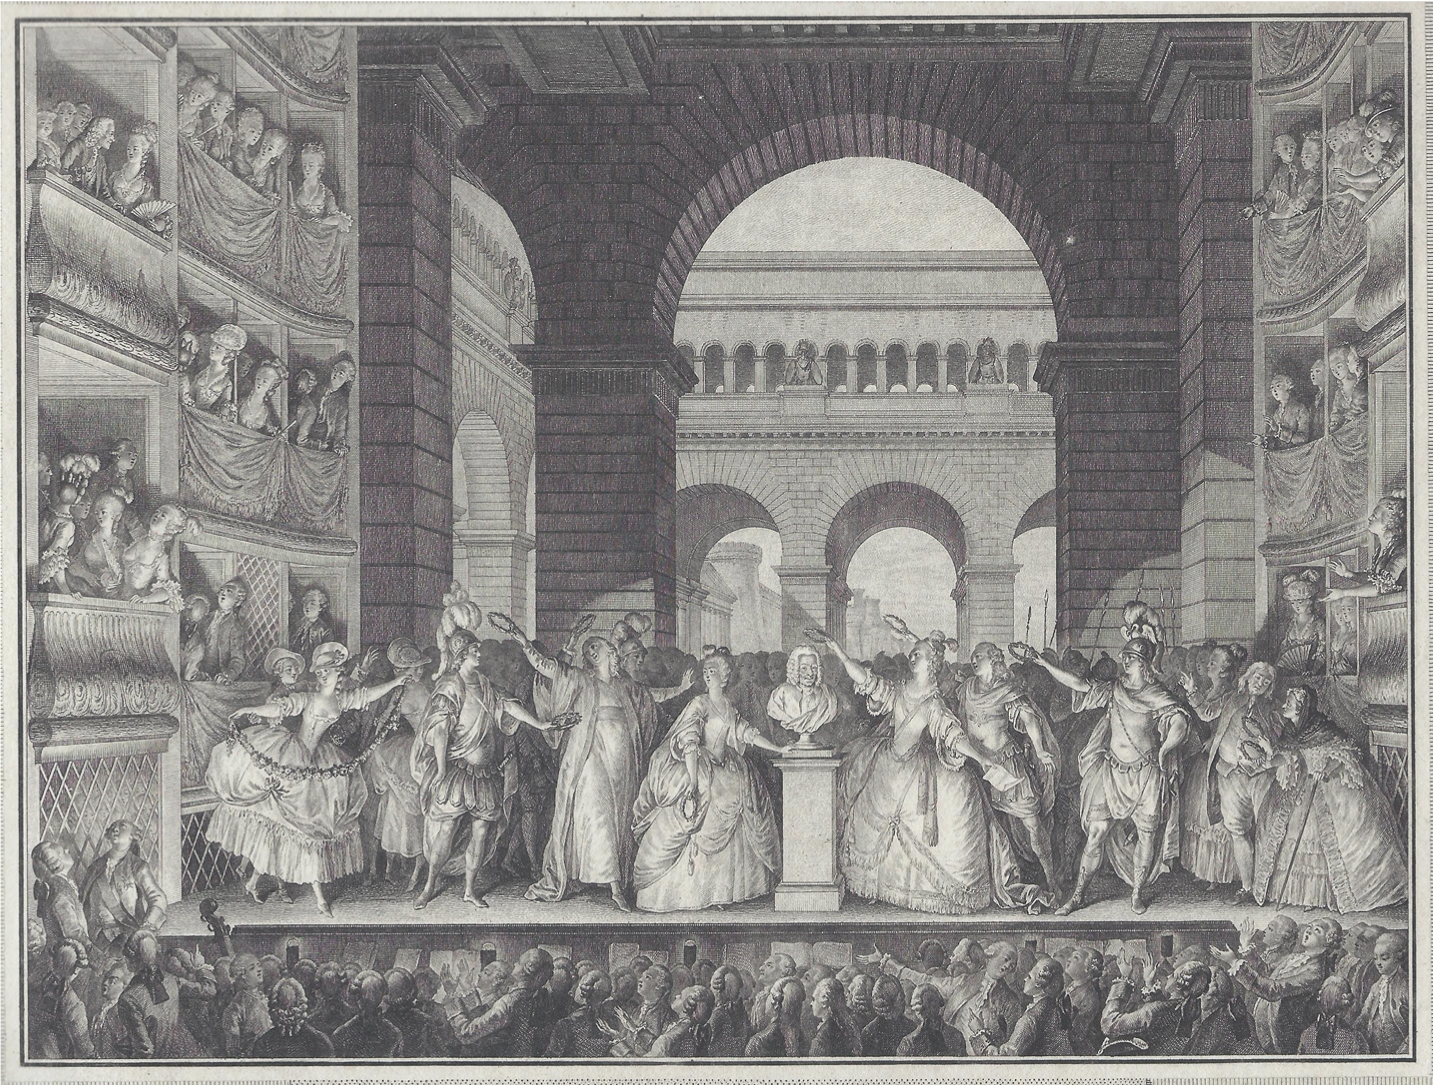 Comment – Celebrating Voltaire in the 1760s